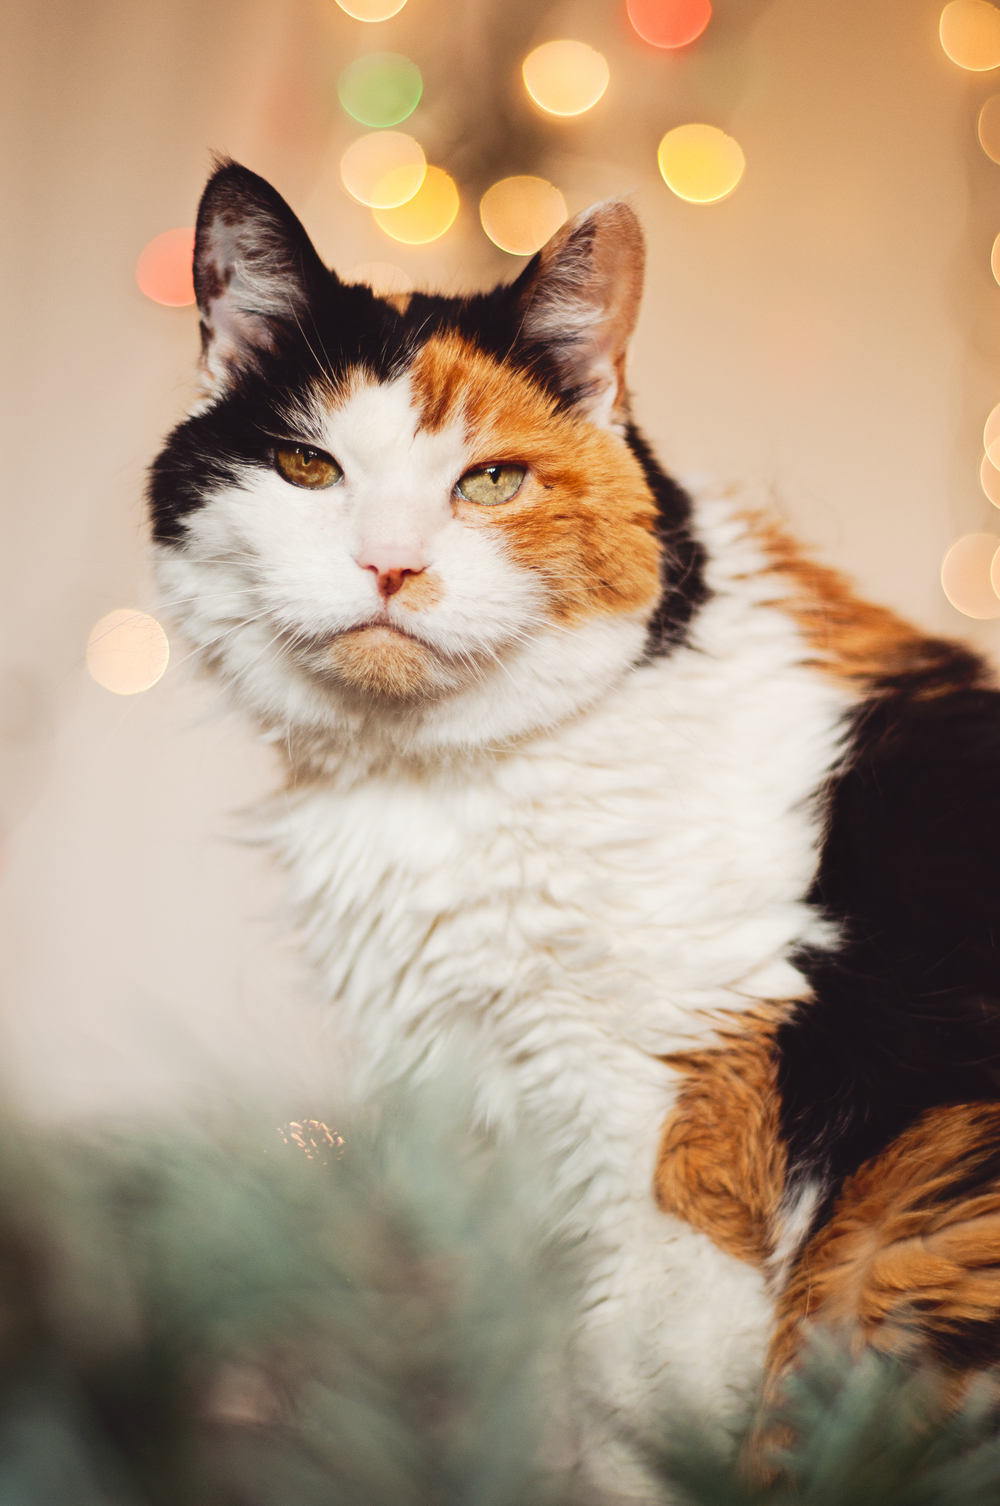 pet-photography-studio-natural-light-lifestyle-cat-holiday-long-island-photographer-digital-2.jpg